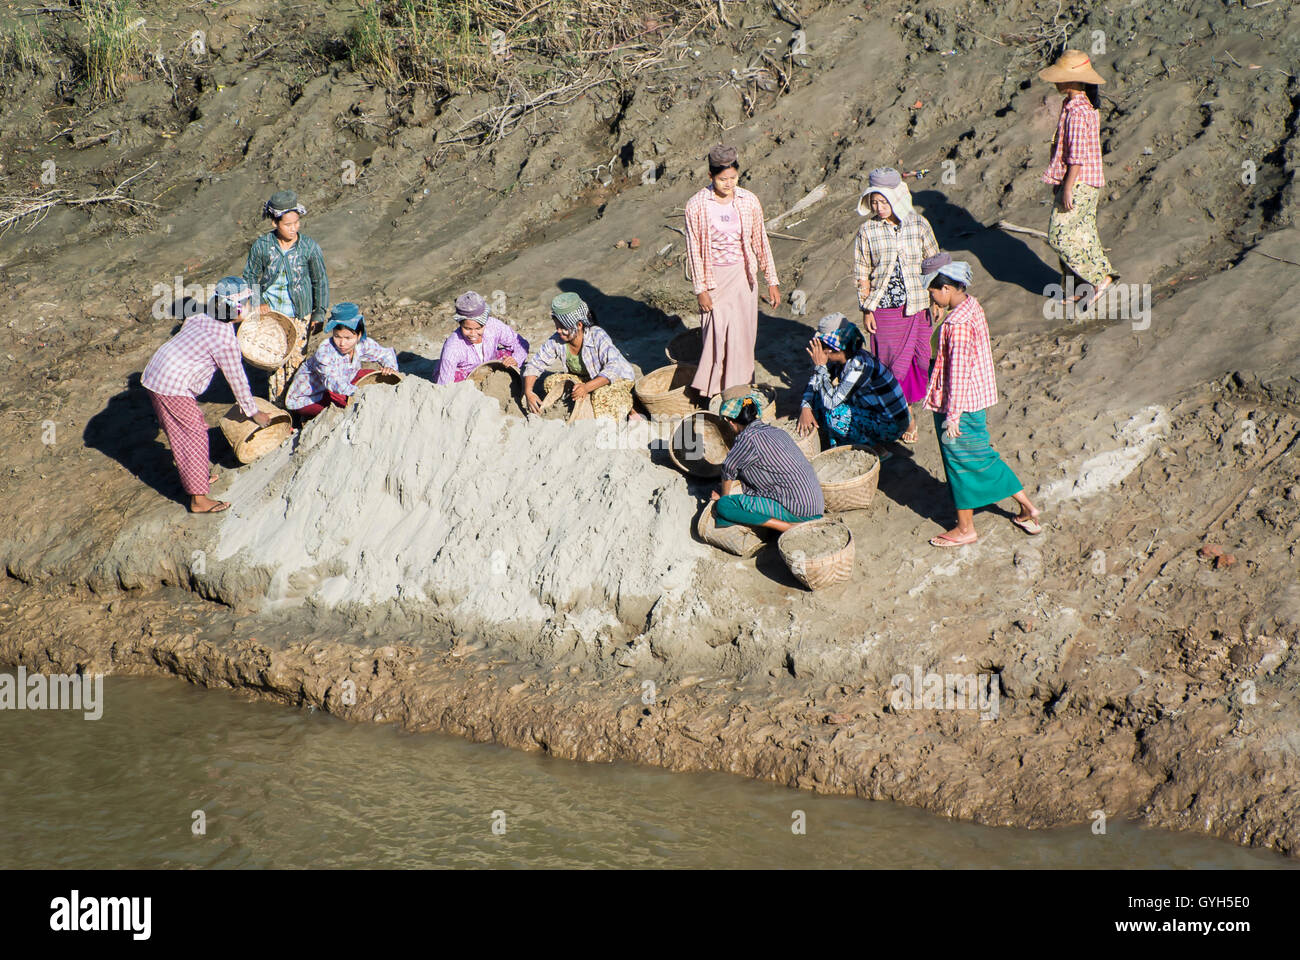 Village Women at Shoreline Collecting Clay to Make Pottery, Myanmar - Stock Image